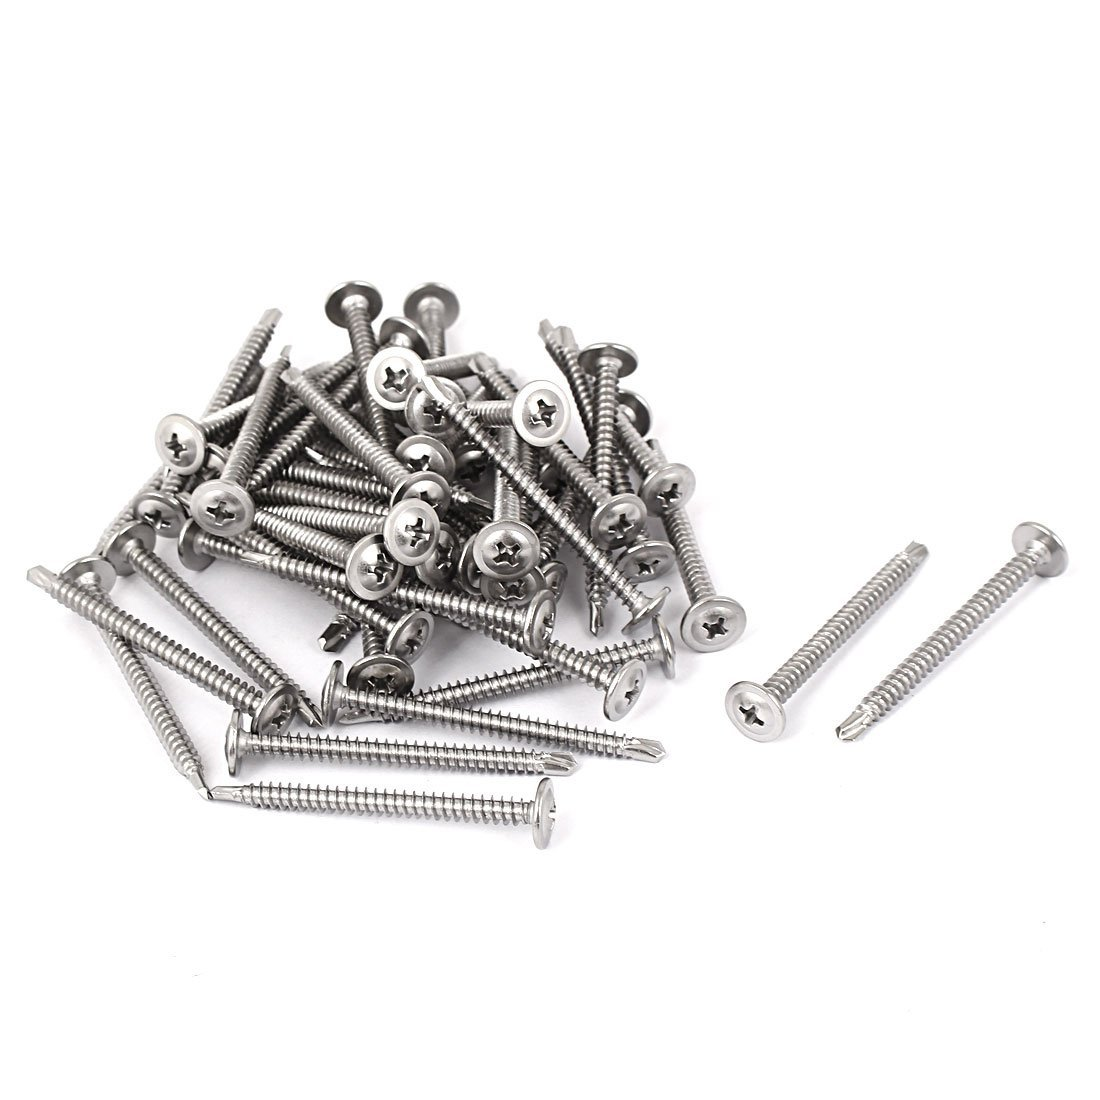 0.375 OD Stainless Steel Round Standoff Pack of 1 #8-32 Screw Size 4.25 Length, Female